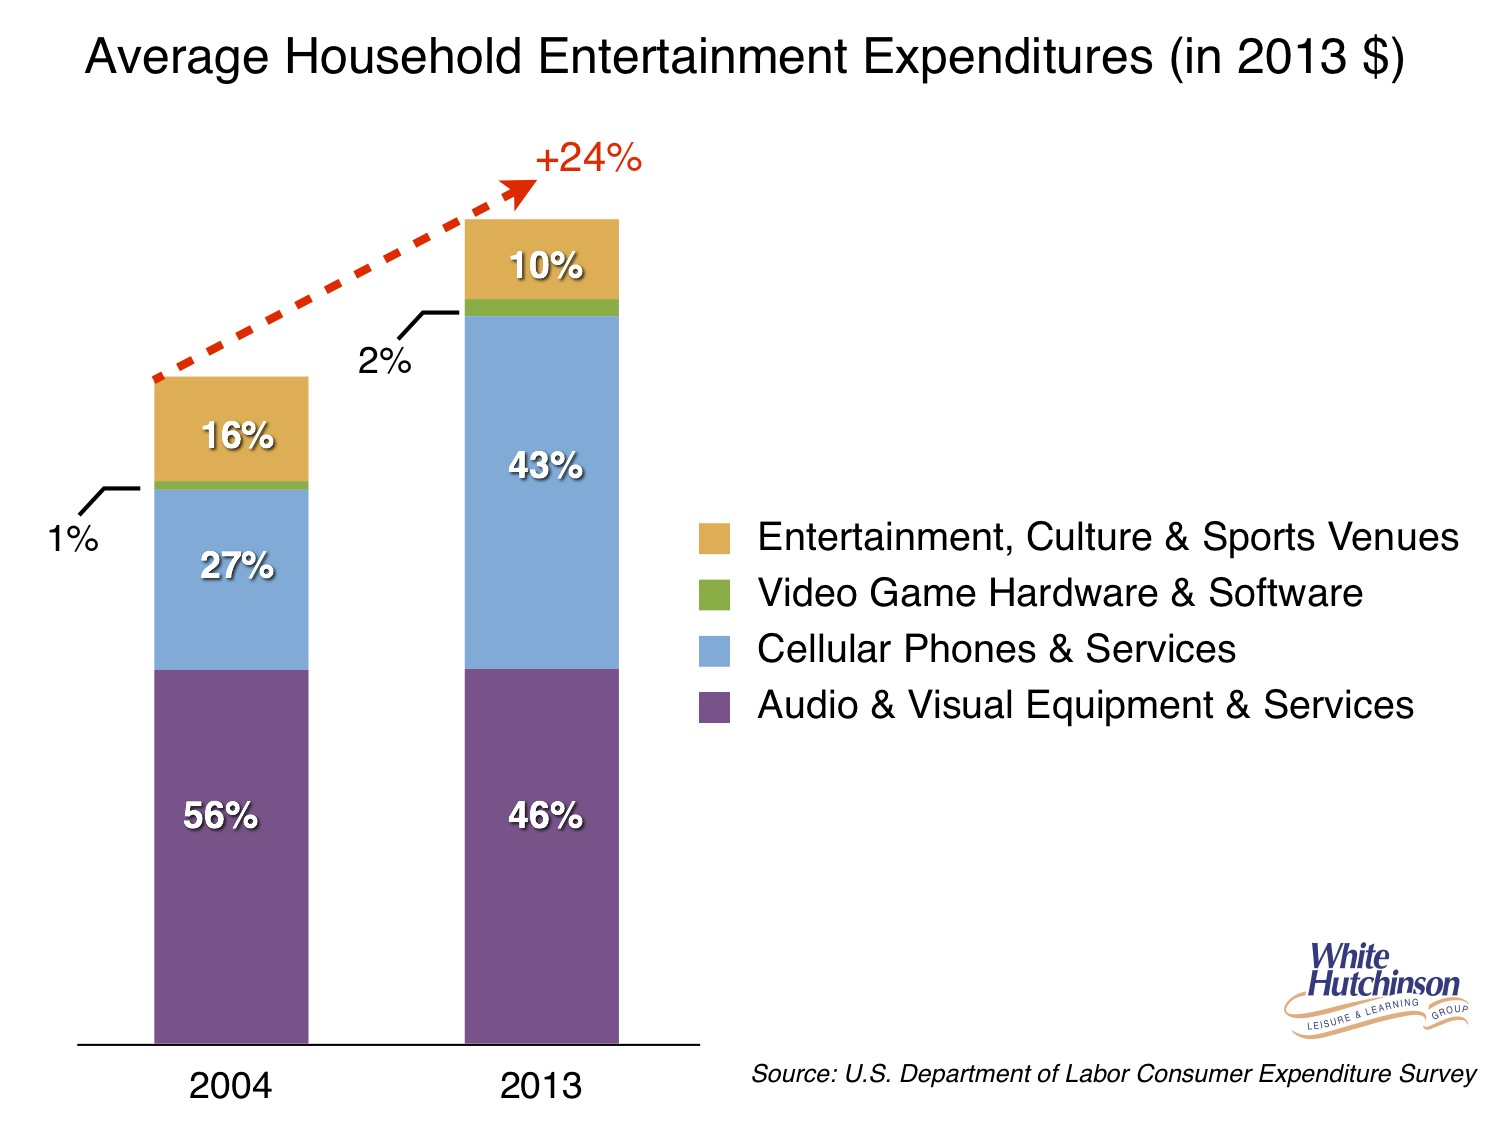 Average household entertainment expenditures 2004 & 2013